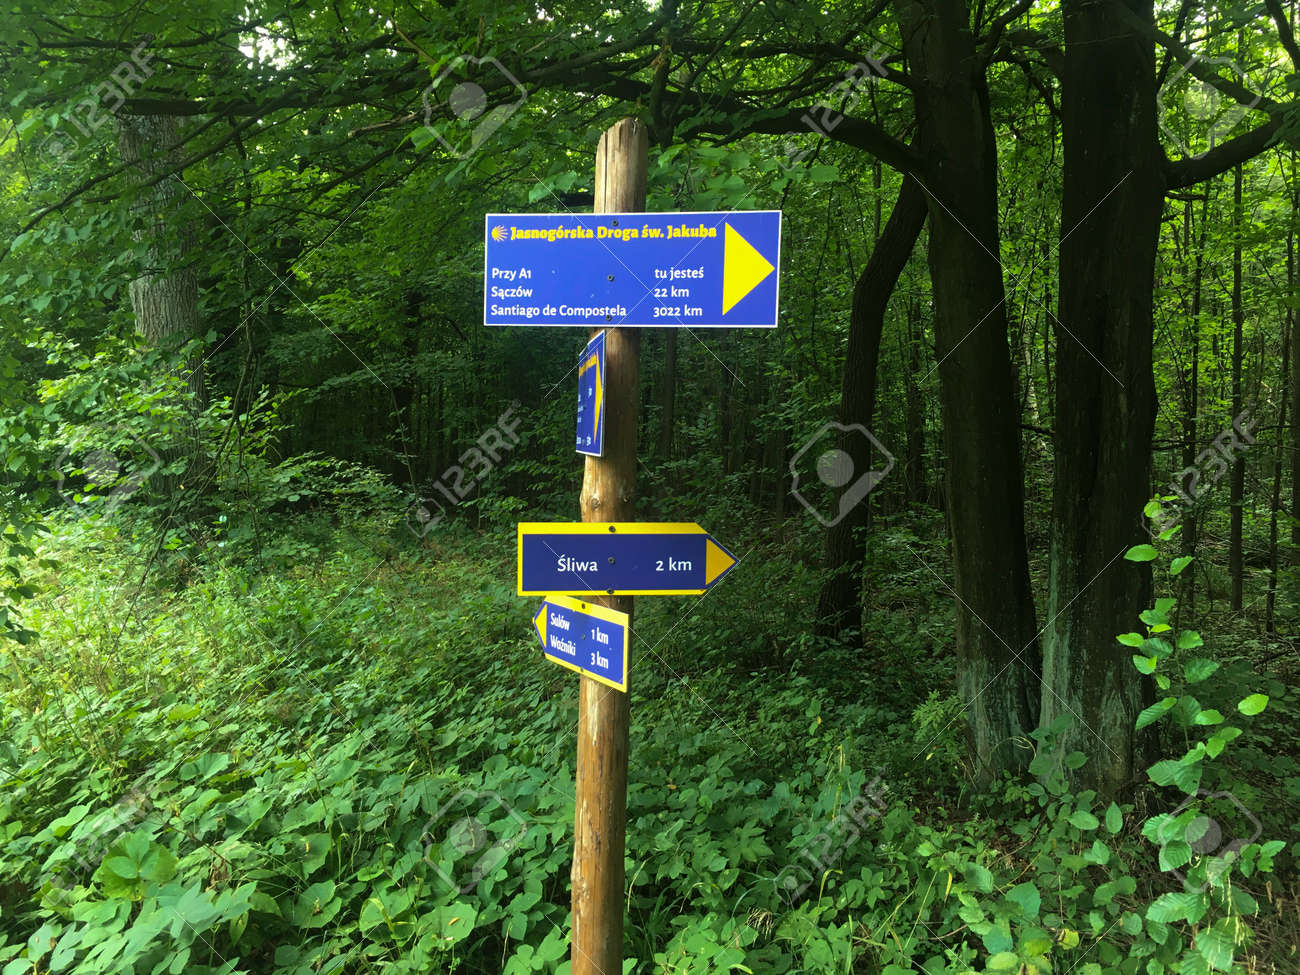 """Camino de Santiago pilgrimage route leading to the cathedral in Santiago de Compostela in Galicia, north-west Spain, """"Jasnogorski"""" fragment near Czestochowa Poland visible route marking at the crossroads of forest roads - 157852319"""